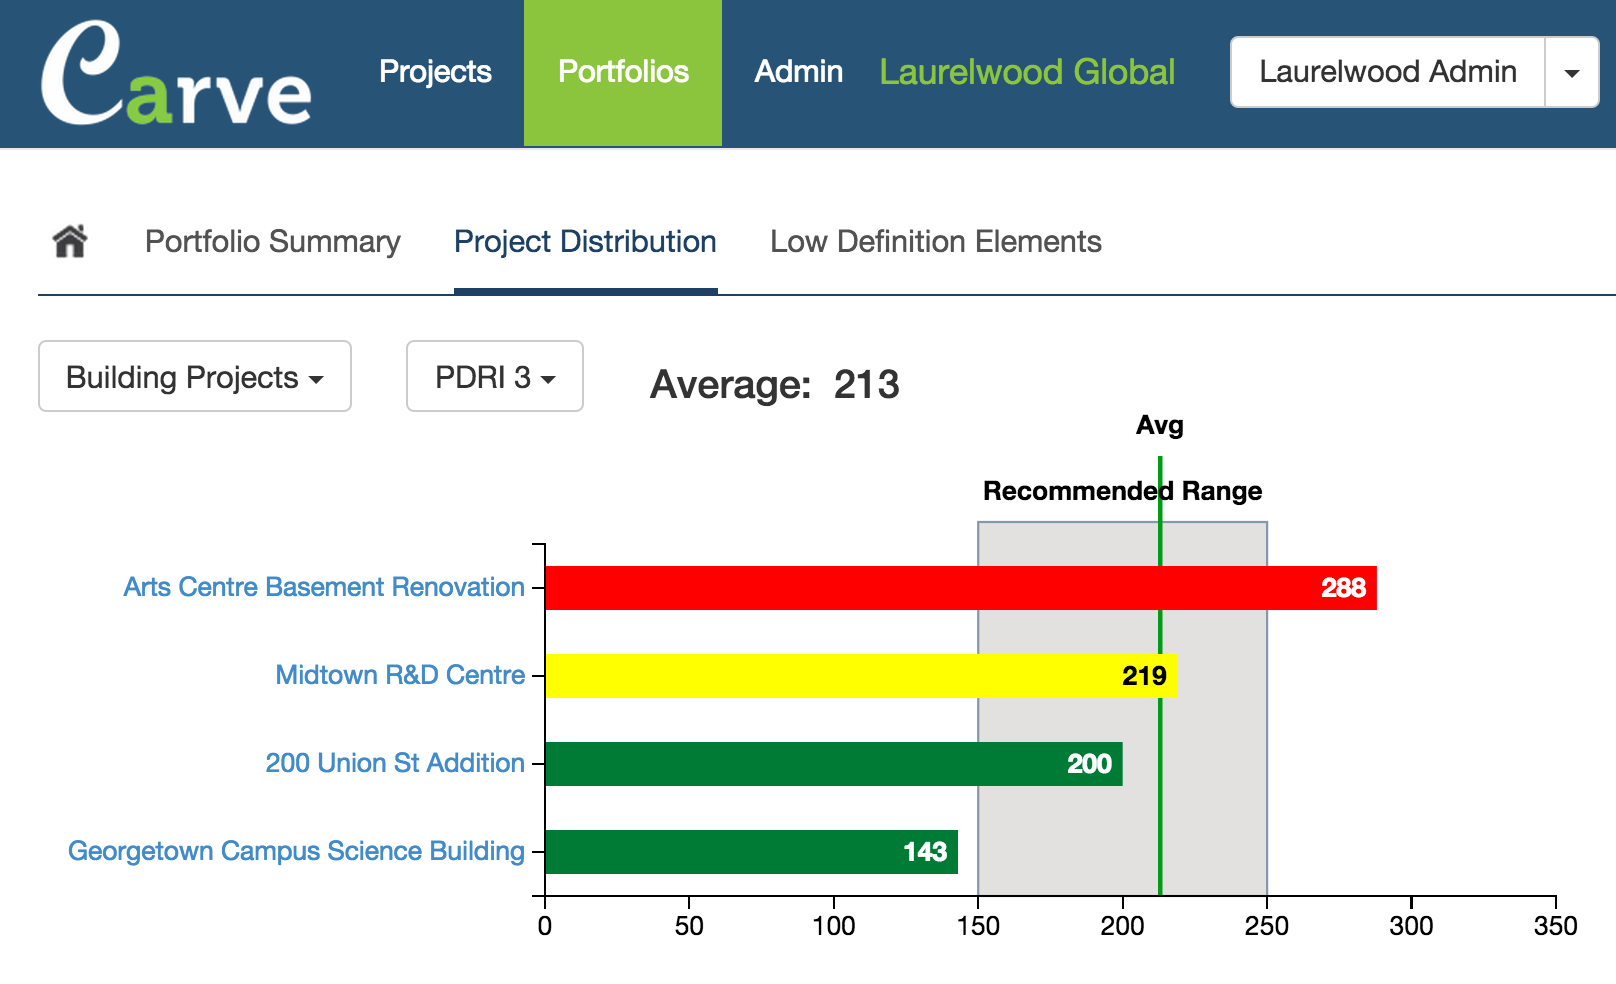 Project distribution view in portfolios section of Carve showing PDRI scores for the various projects, the average score, and the recommended score range.